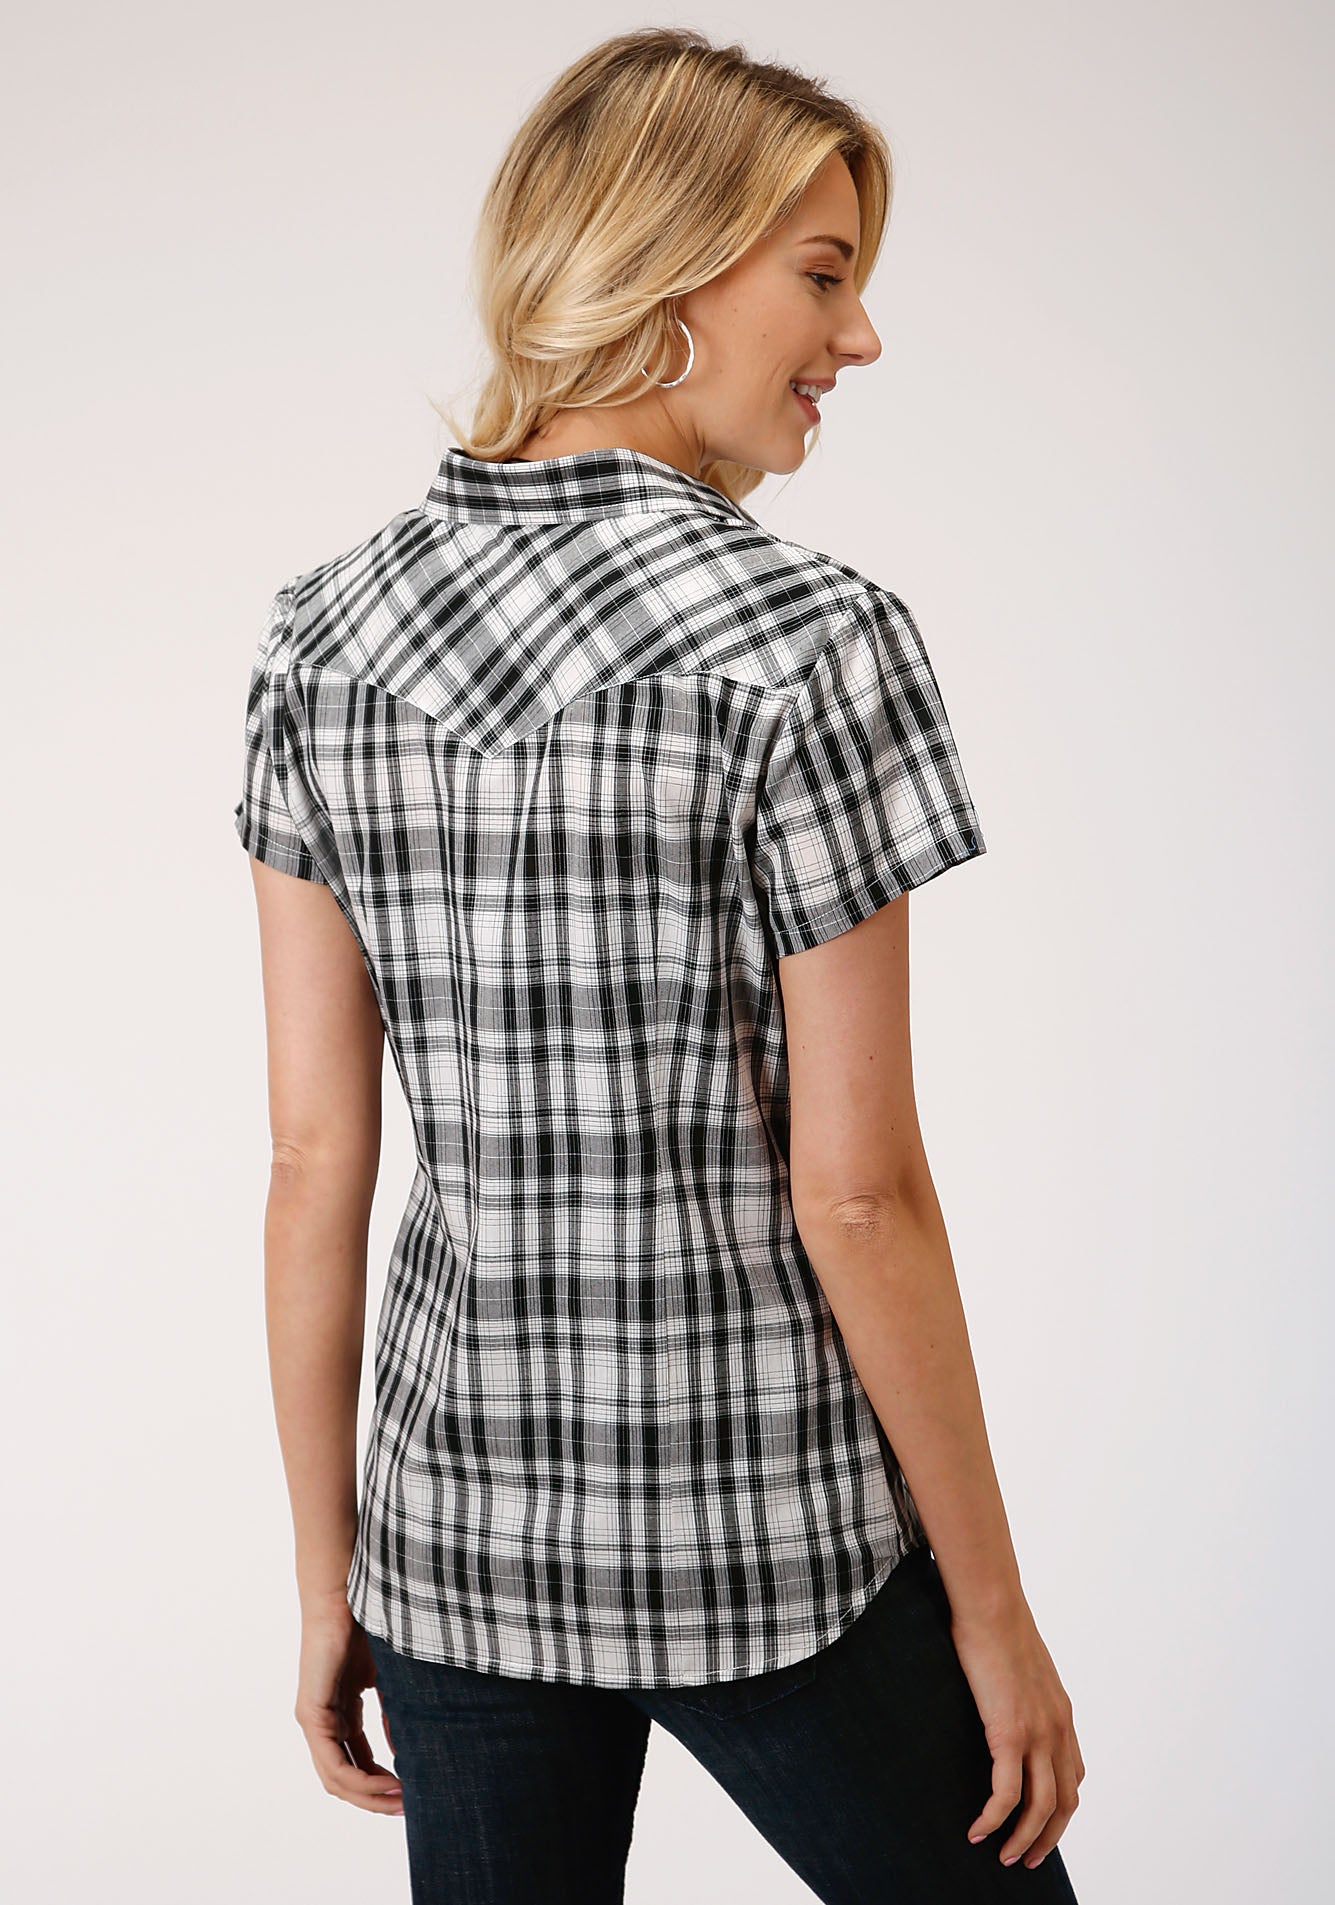 ROPER WOMENS BLACK 00042 BLACK & WHITE PLAID KARMAN CLASSICS- 55/45 PLAID SHORT SLEEVE